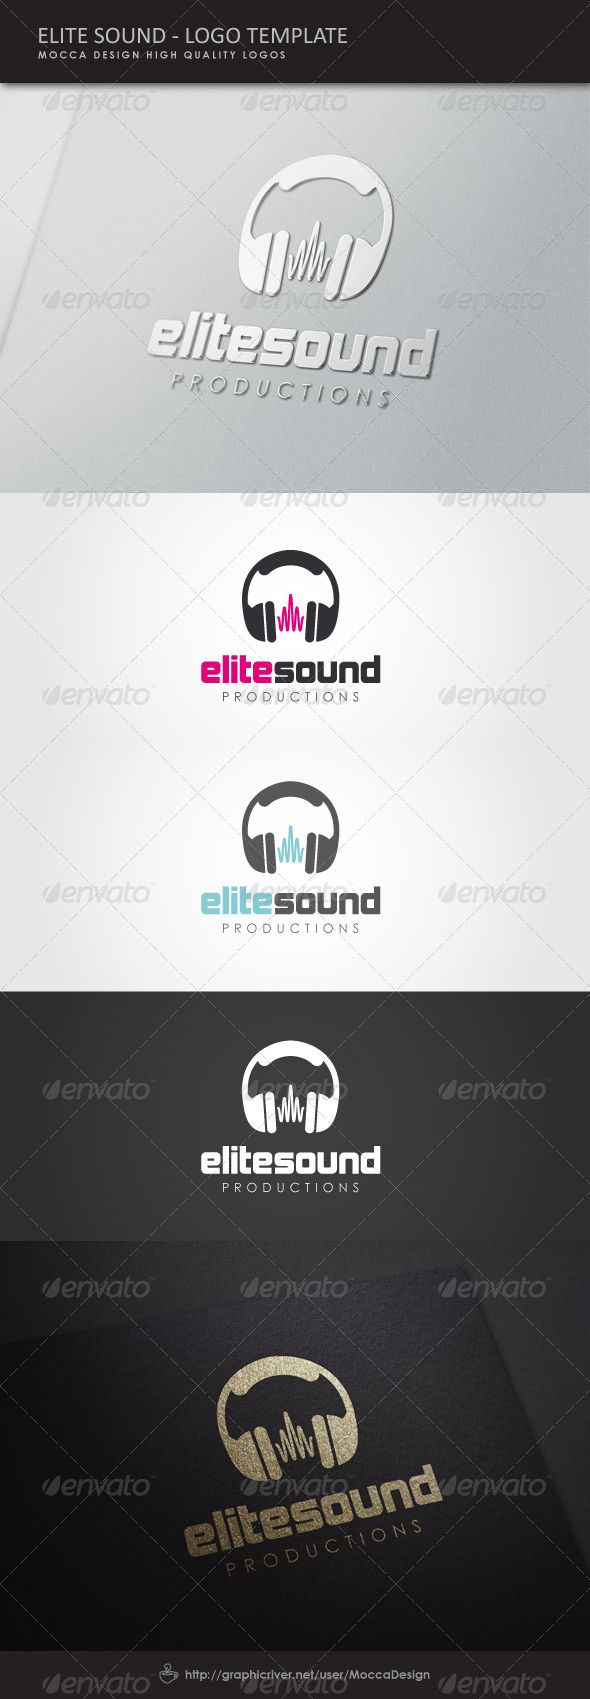 Elite Sound Logo #GraphicRiver EliteSound is a clean, professional and elegant logo suitable for music industry, audio engineering, recording studio, sound technology or any other business related. Features 3 Color Variation: CMYK Pink, CMYK Blue and White 100% Editable & Re-sizable vectors 100% Fully editable text Easily customizable colors AI & EPS documents The ZIP archive contains A folder with EliteSound logo CMYK Pink version in .AI & .EPS A folder with EliteSound logo CMYK Blue…